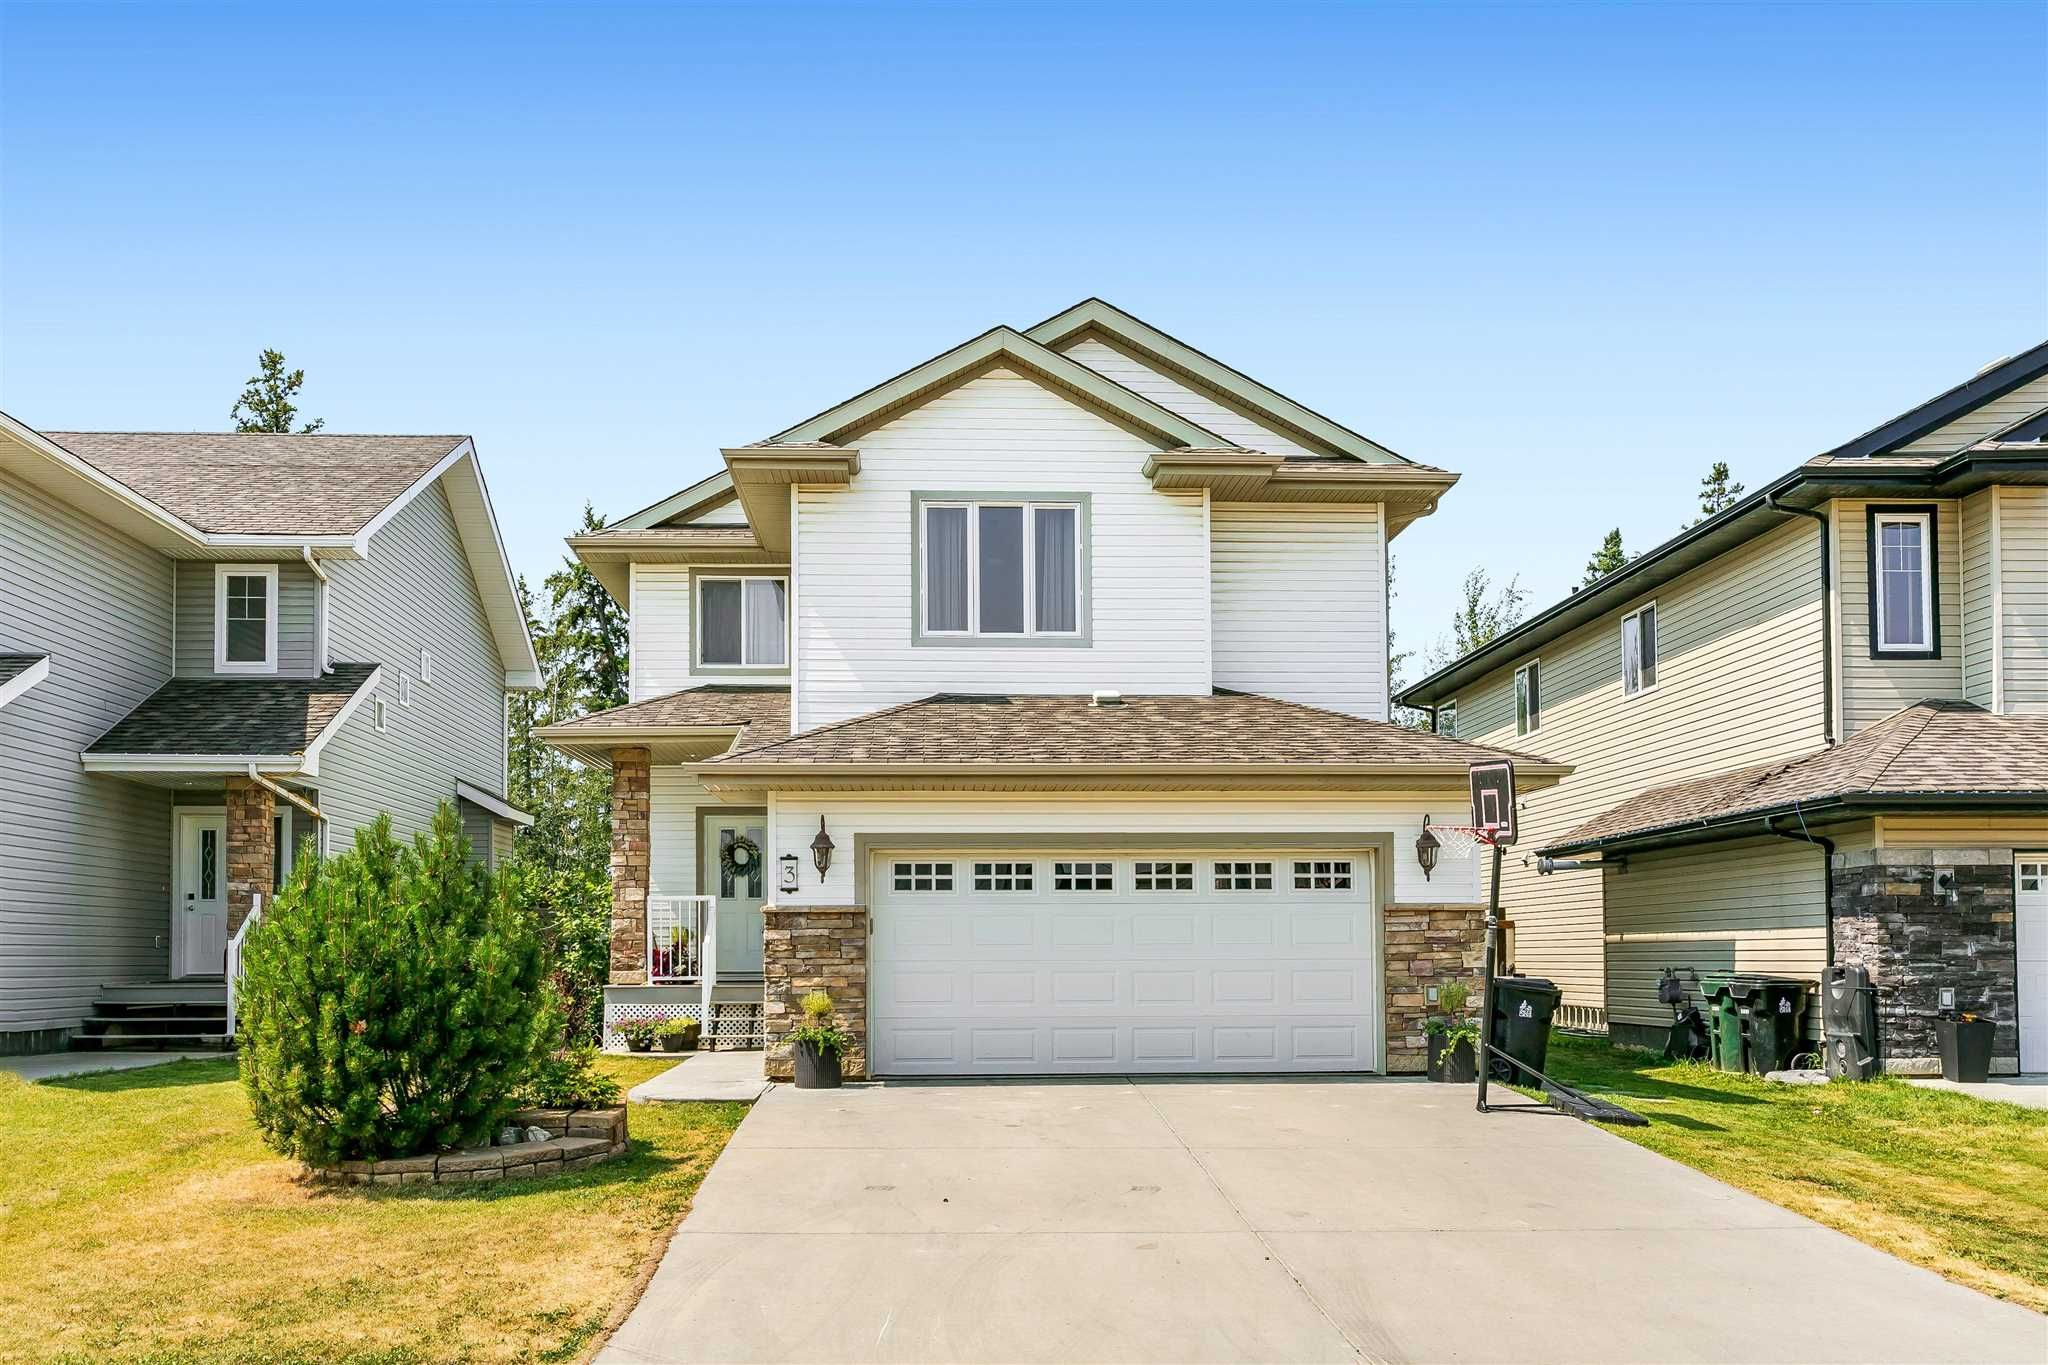 Main Photo: 3 HIGHLANDS Way: Spruce Grove House for sale : MLS®# E4254643